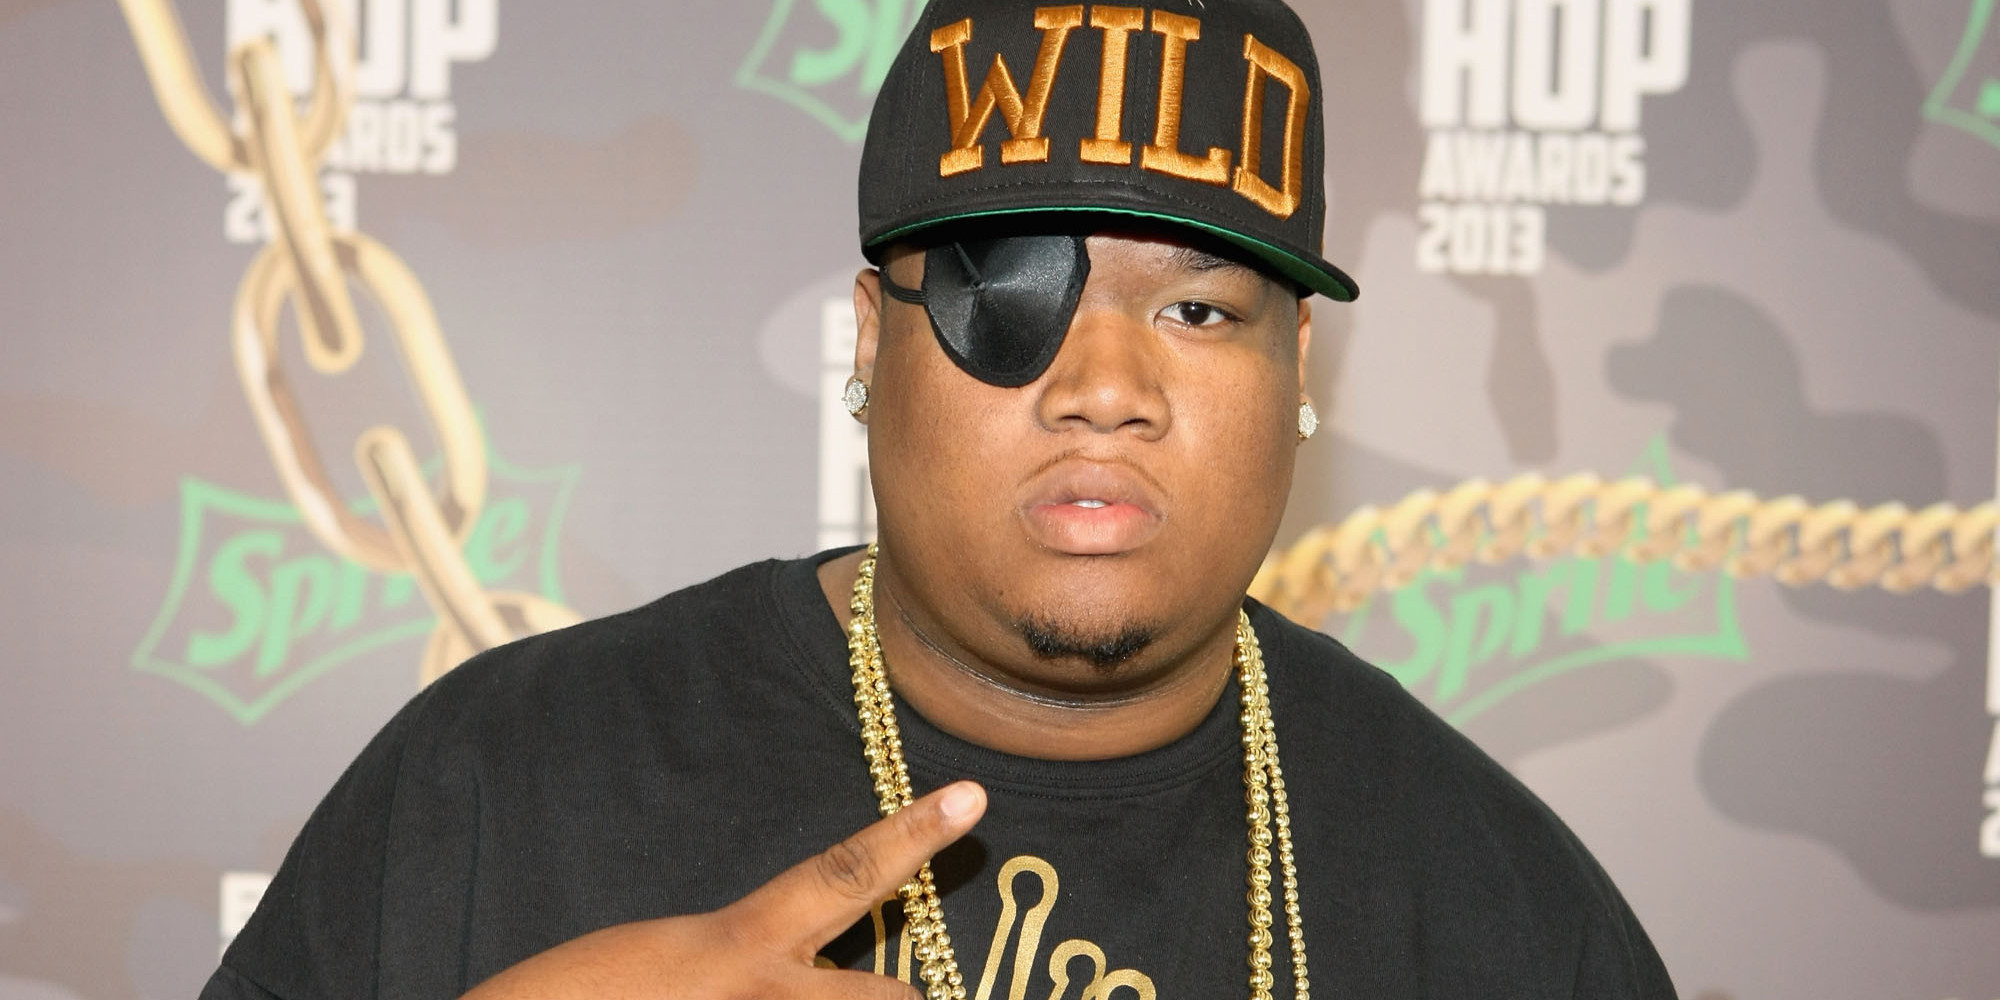 Rappers Son Dies Doe b Dead Rapper Dies at 22